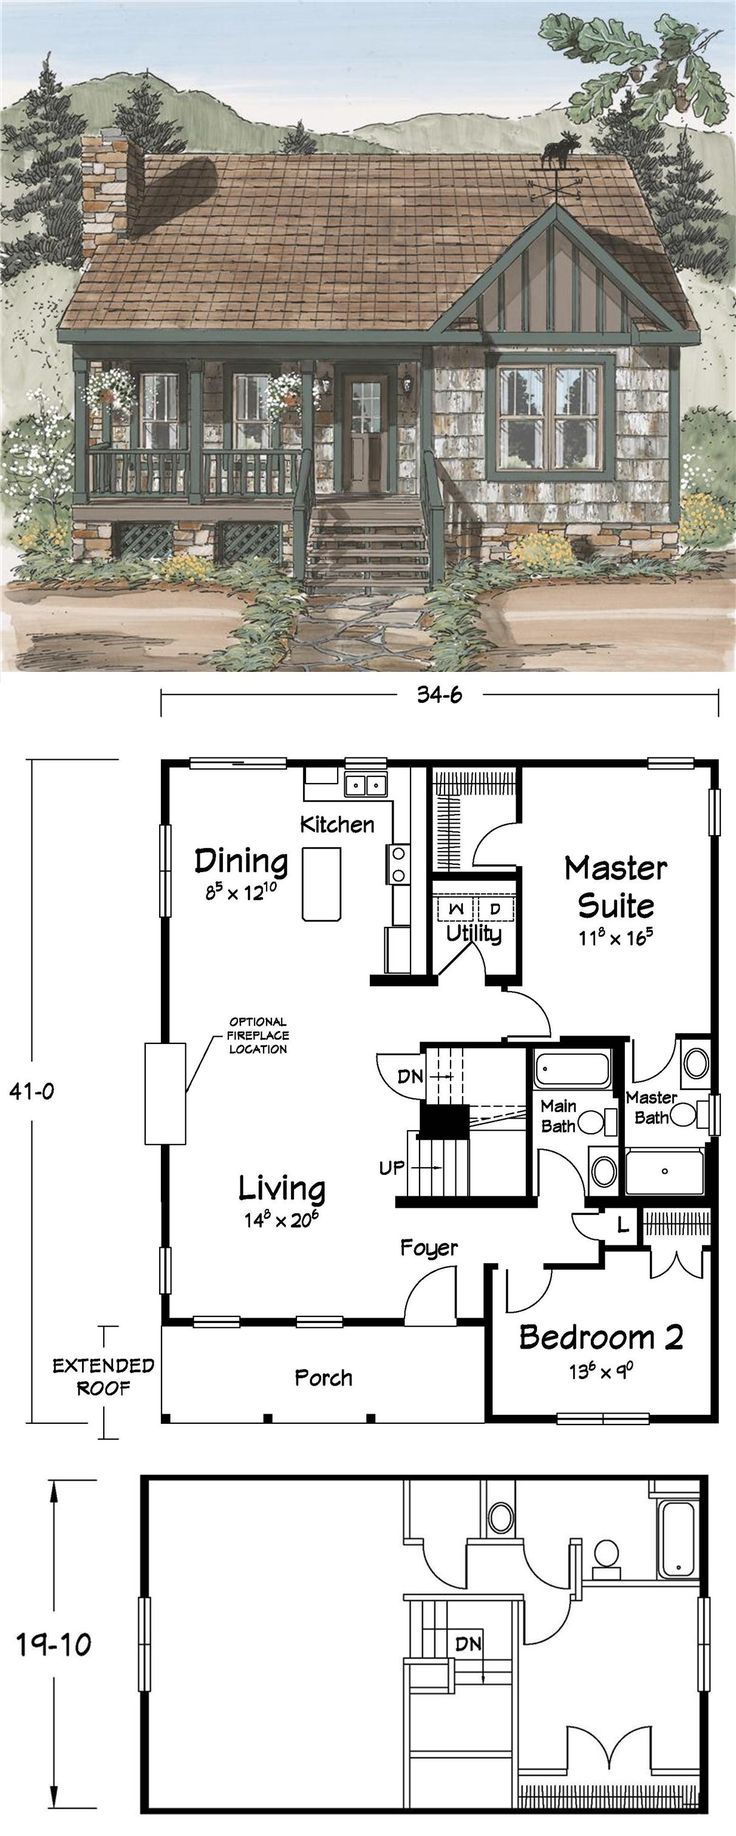 Cute floor plans tiny homes pinterest cabin small Cabin floor plans